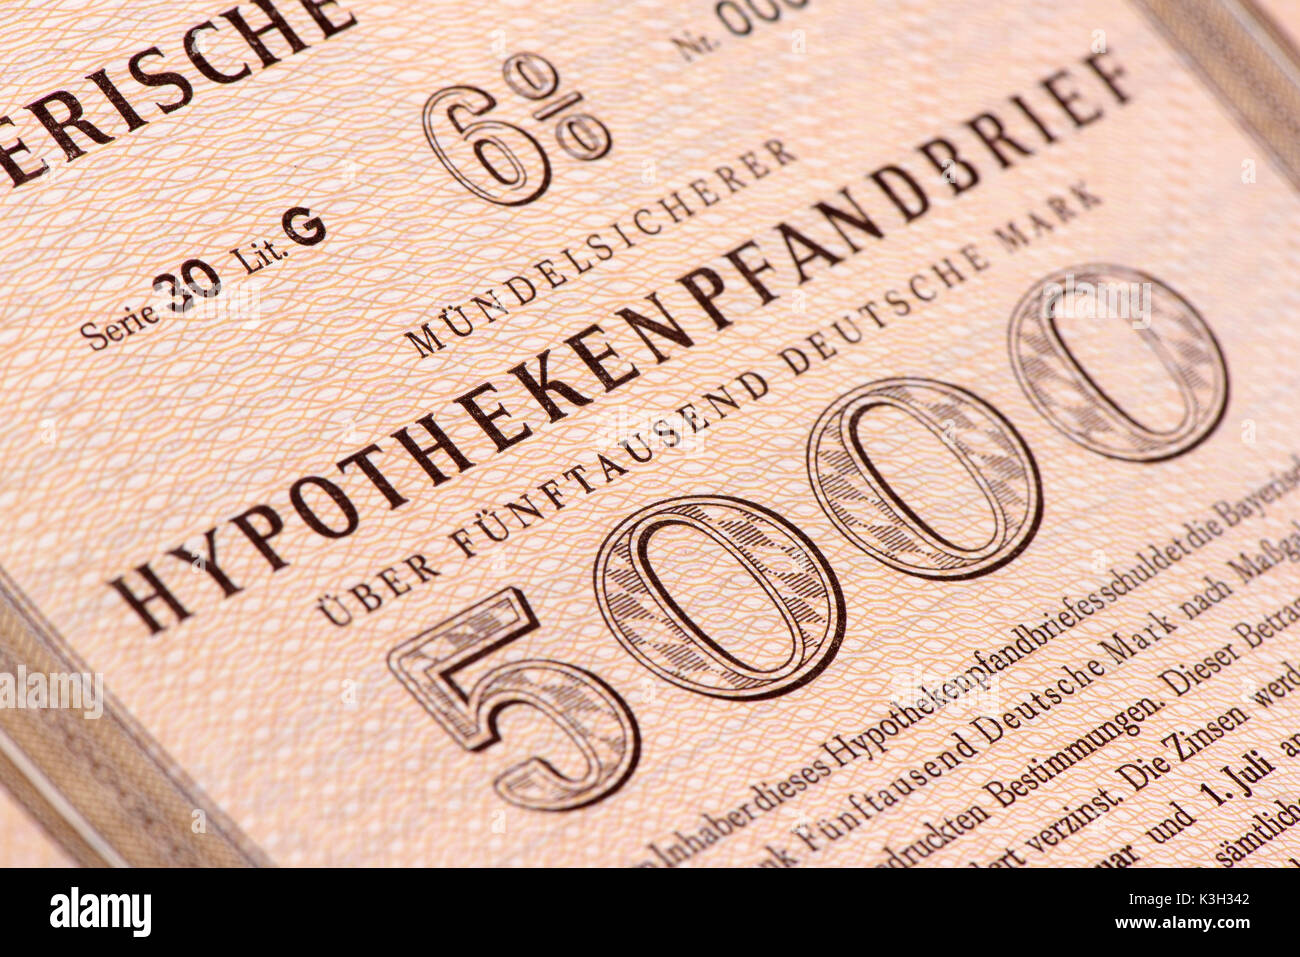 Mortgage bond of the Bayerische Vereinsbank more than 5000 DM - Stock Image